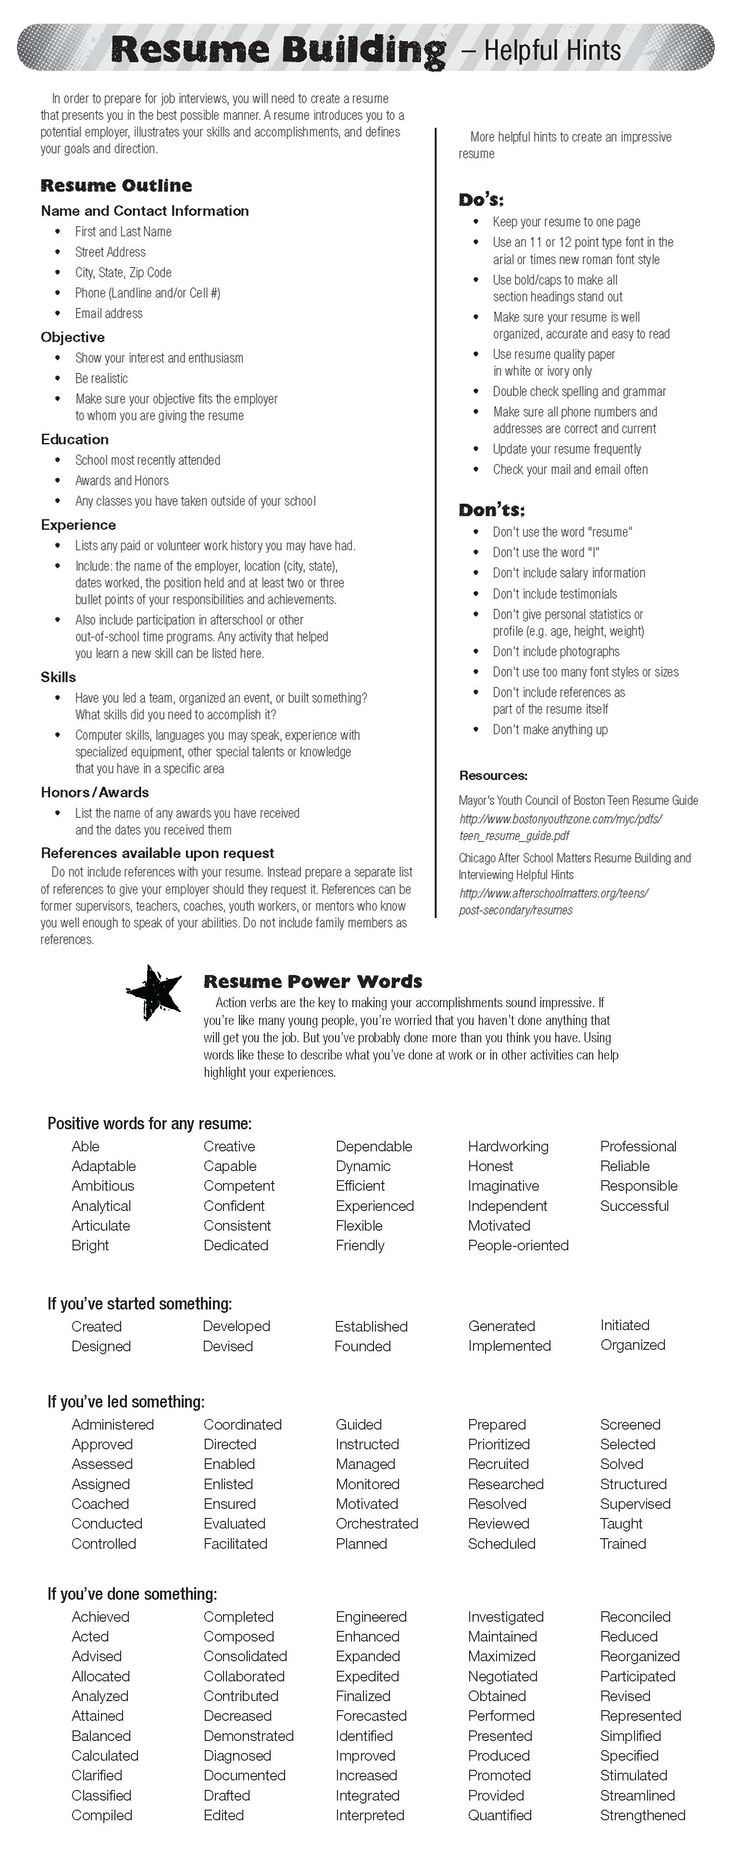 Opposenewapstandardsus  Unusual  Ideas About Resume On Pinterest  Cv Format Resume Cv And  With Exciting  Ideas About Resume On Pinterest  Cv Format Resume Cv And Resume Templates With Archaic Career Change Resume Also Cover Letter Examples For Resumes In Addition How To Make A Professional Resume And Hostess Resume As Well As Resume Samples Free Additionally Google Drive Resume Template From Pinterestcom With Opposenewapstandardsus  Exciting  Ideas About Resume On Pinterest  Cv Format Resume Cv And  With Archaic  Ideas About Resume On Pinterest  Cv Format Resume Cv And Resume Templates And Unusual Career Change Resume Also Cover Letter Examples For Resumes In Addition How To Make A Professional Resume From Pinterestcom